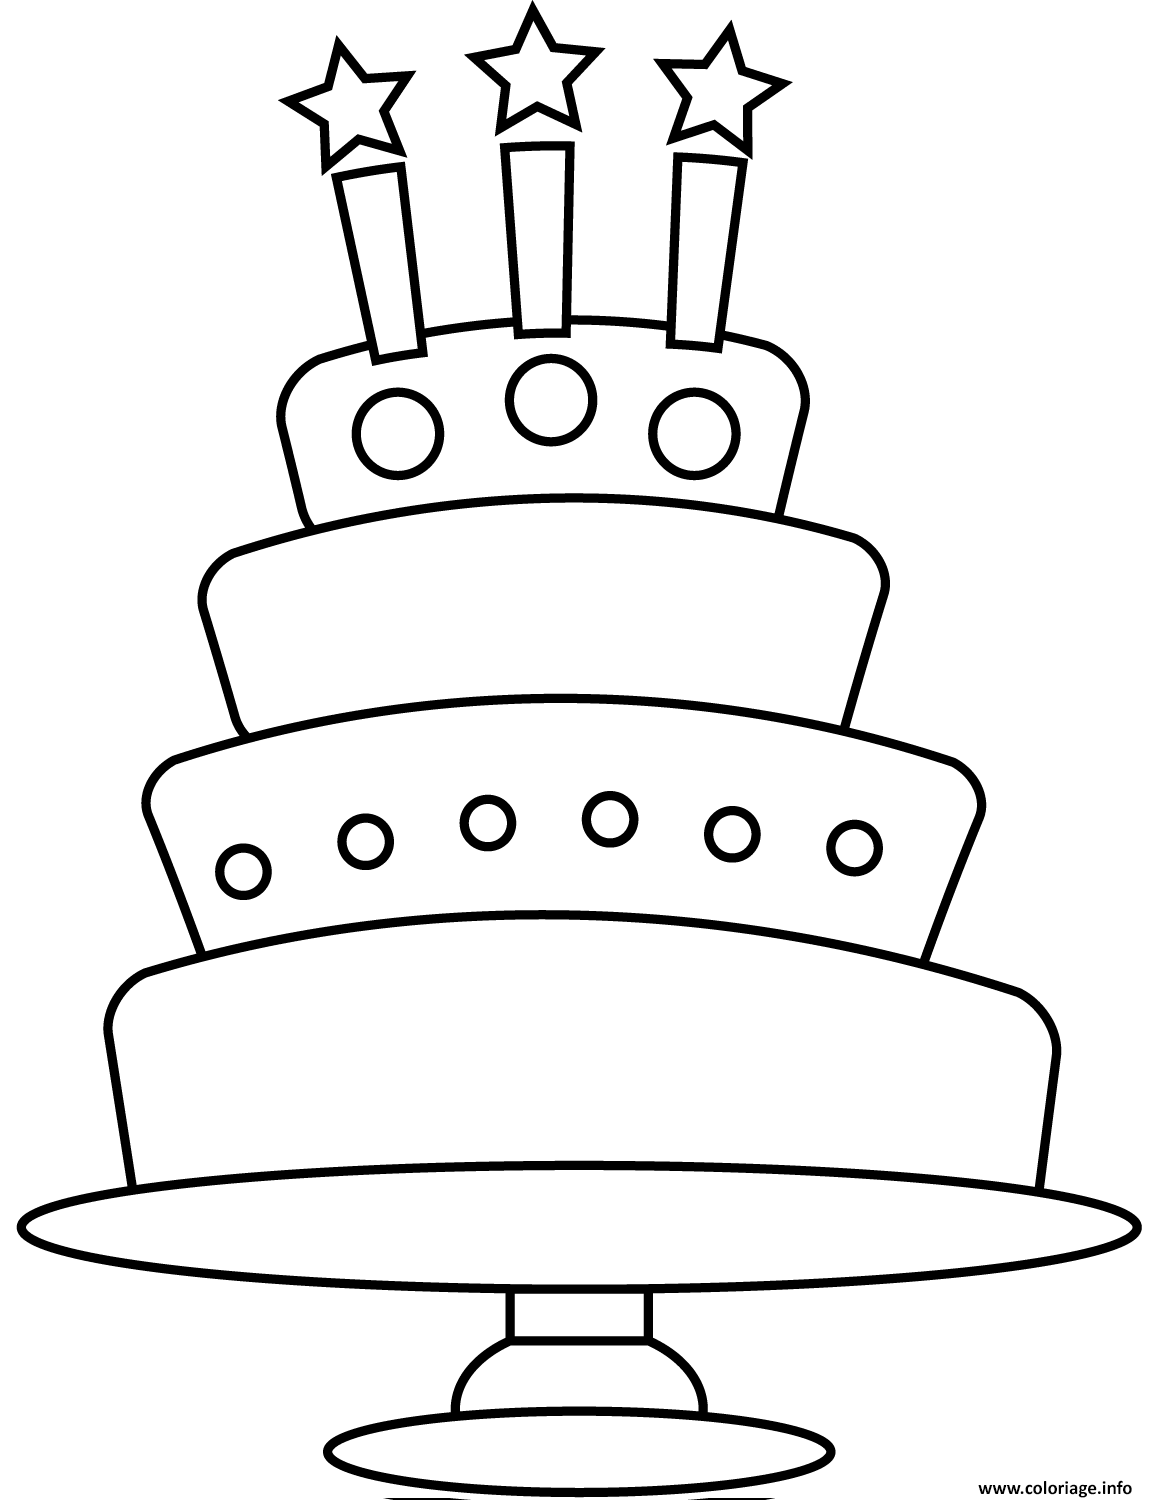 Coloriage Simple Gateau Anniversaire 3 Chandelles 4 Etages Dessin